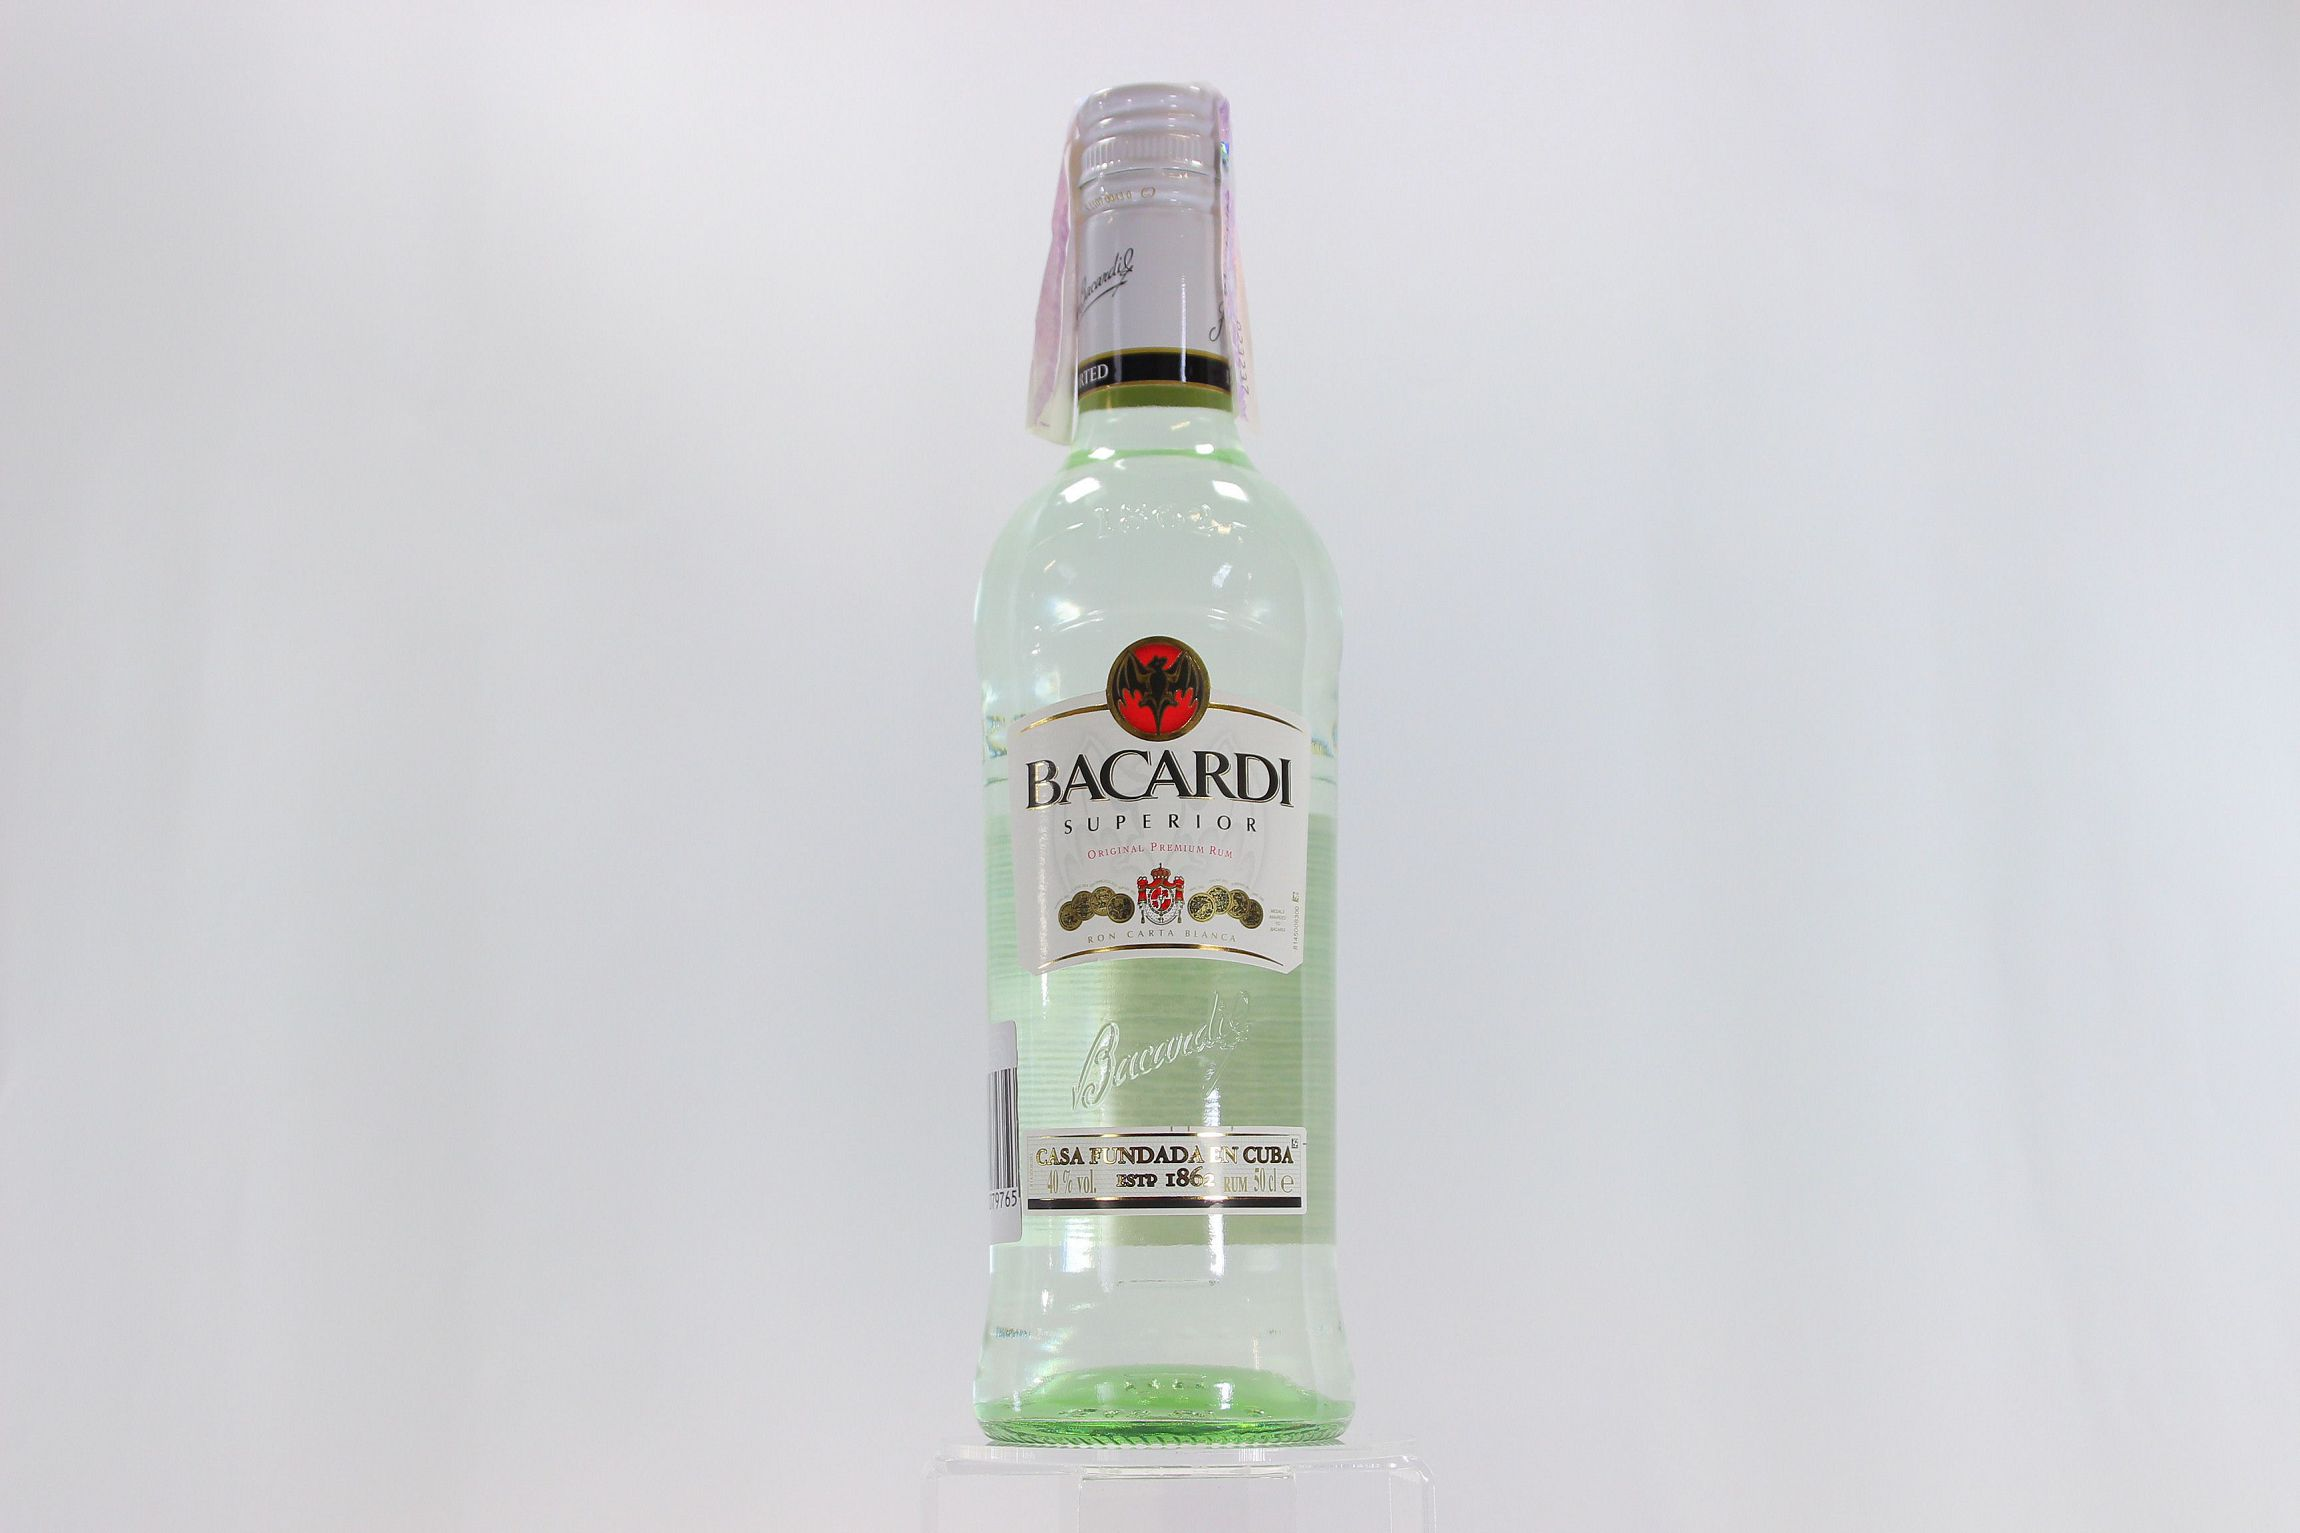 Bacardi HD Wallpaper